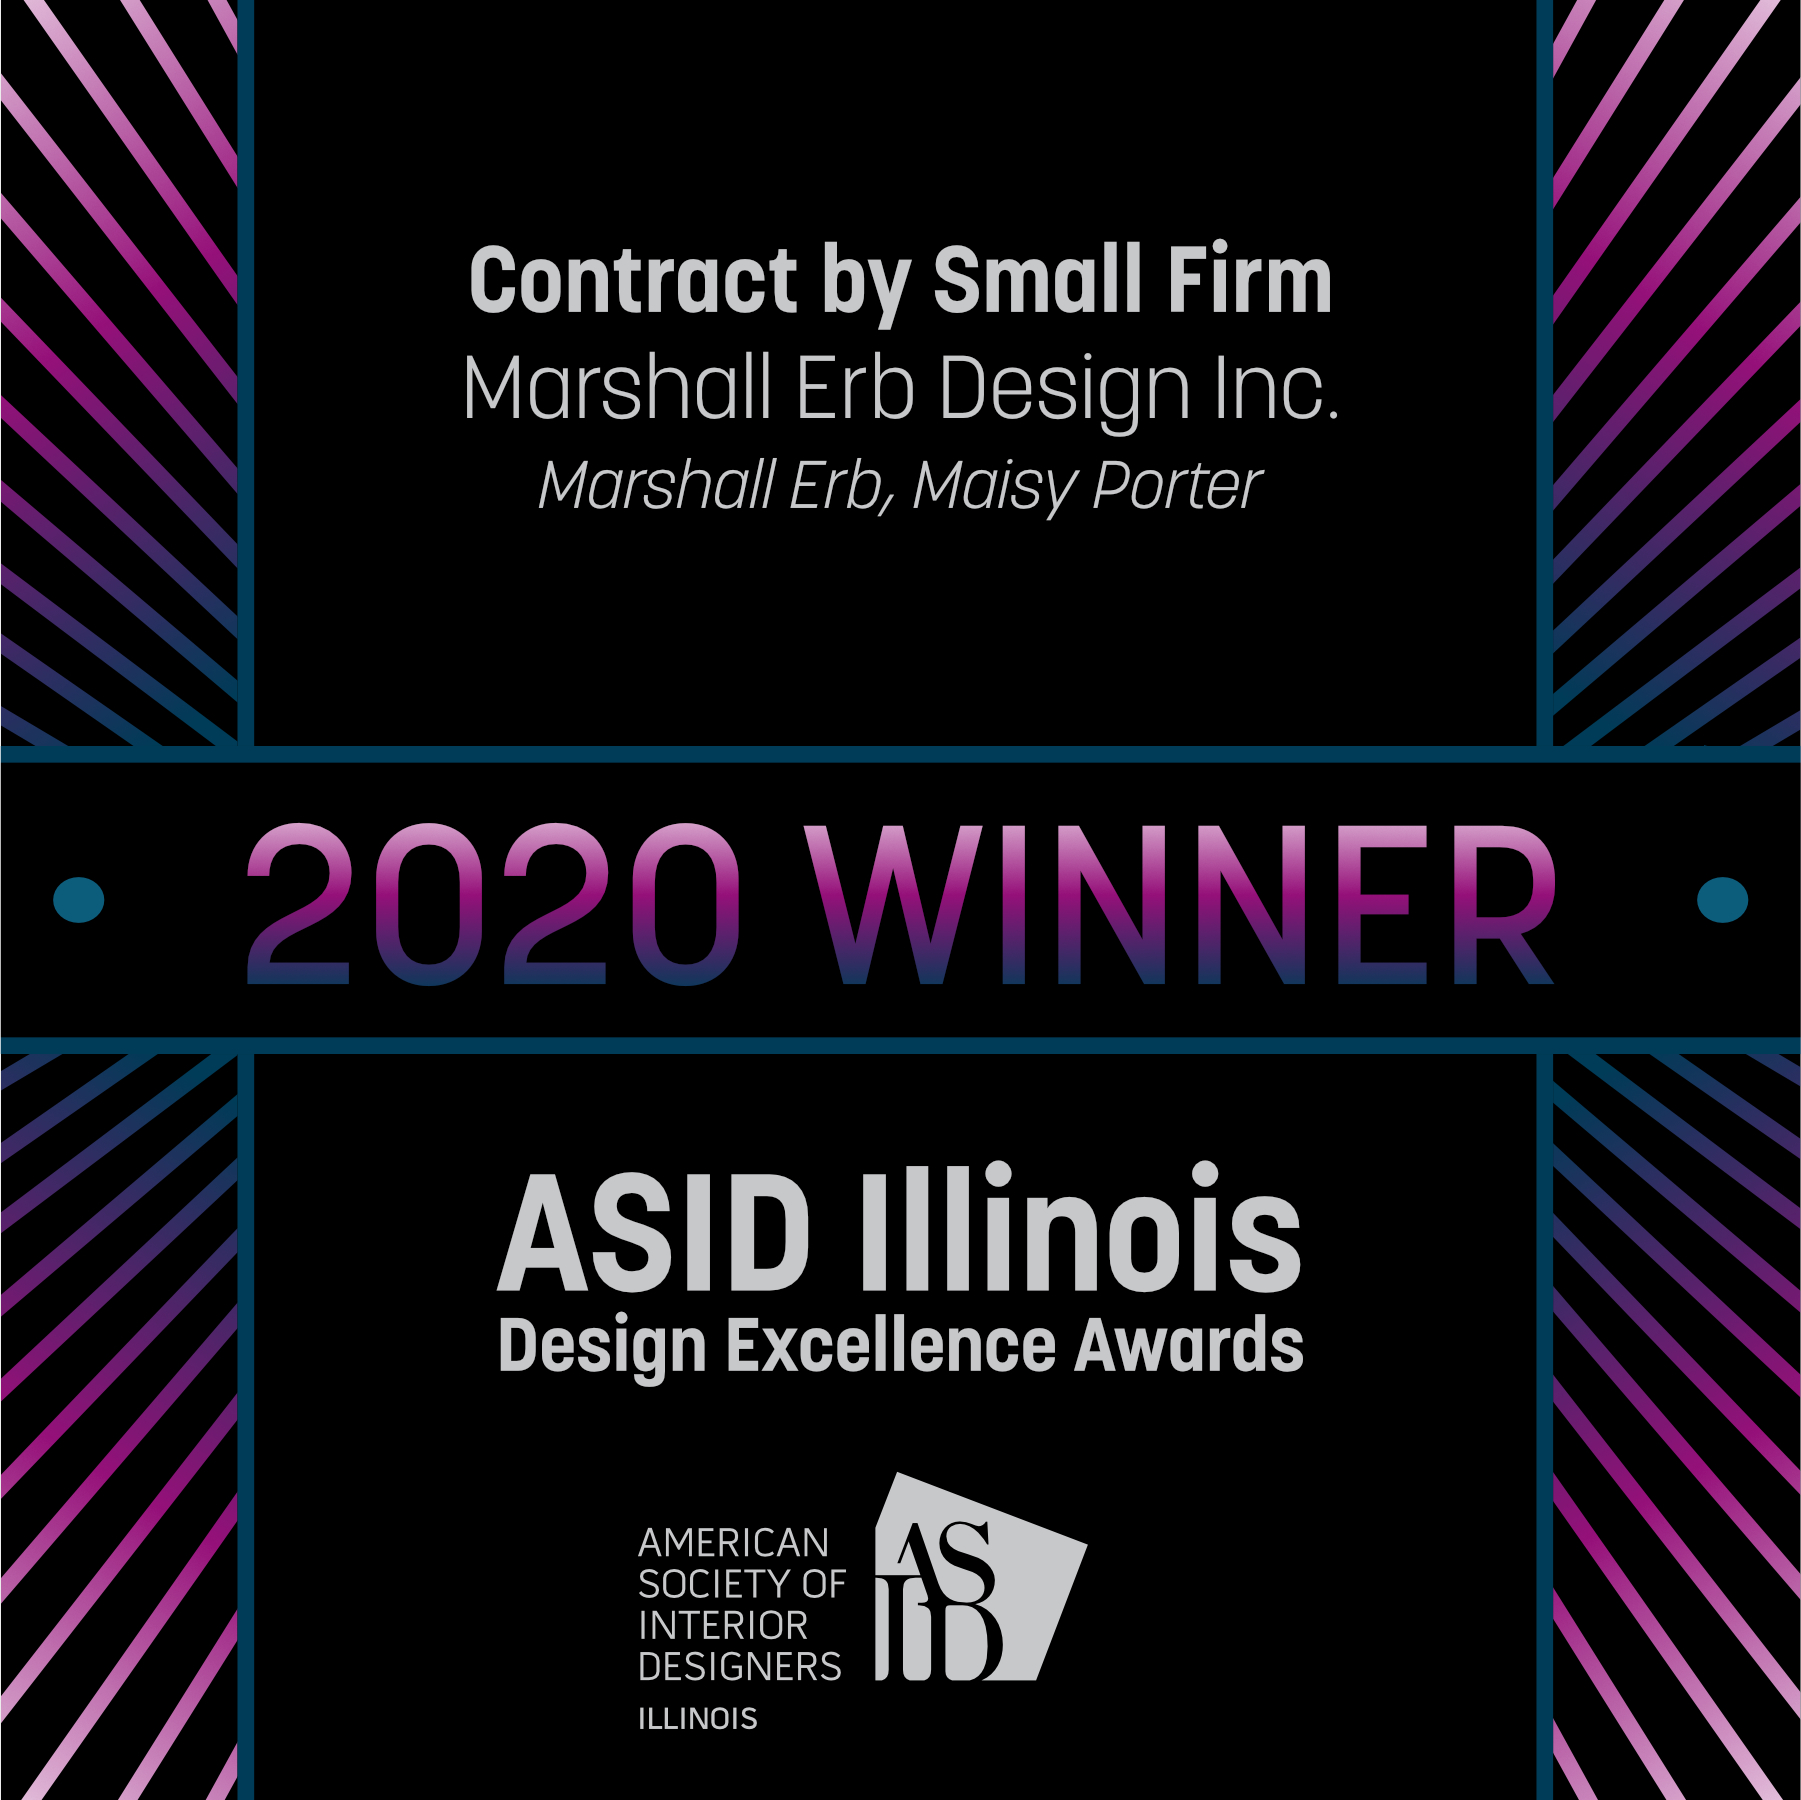 Marshall Erb Design Excellence Awards 2020 Winner